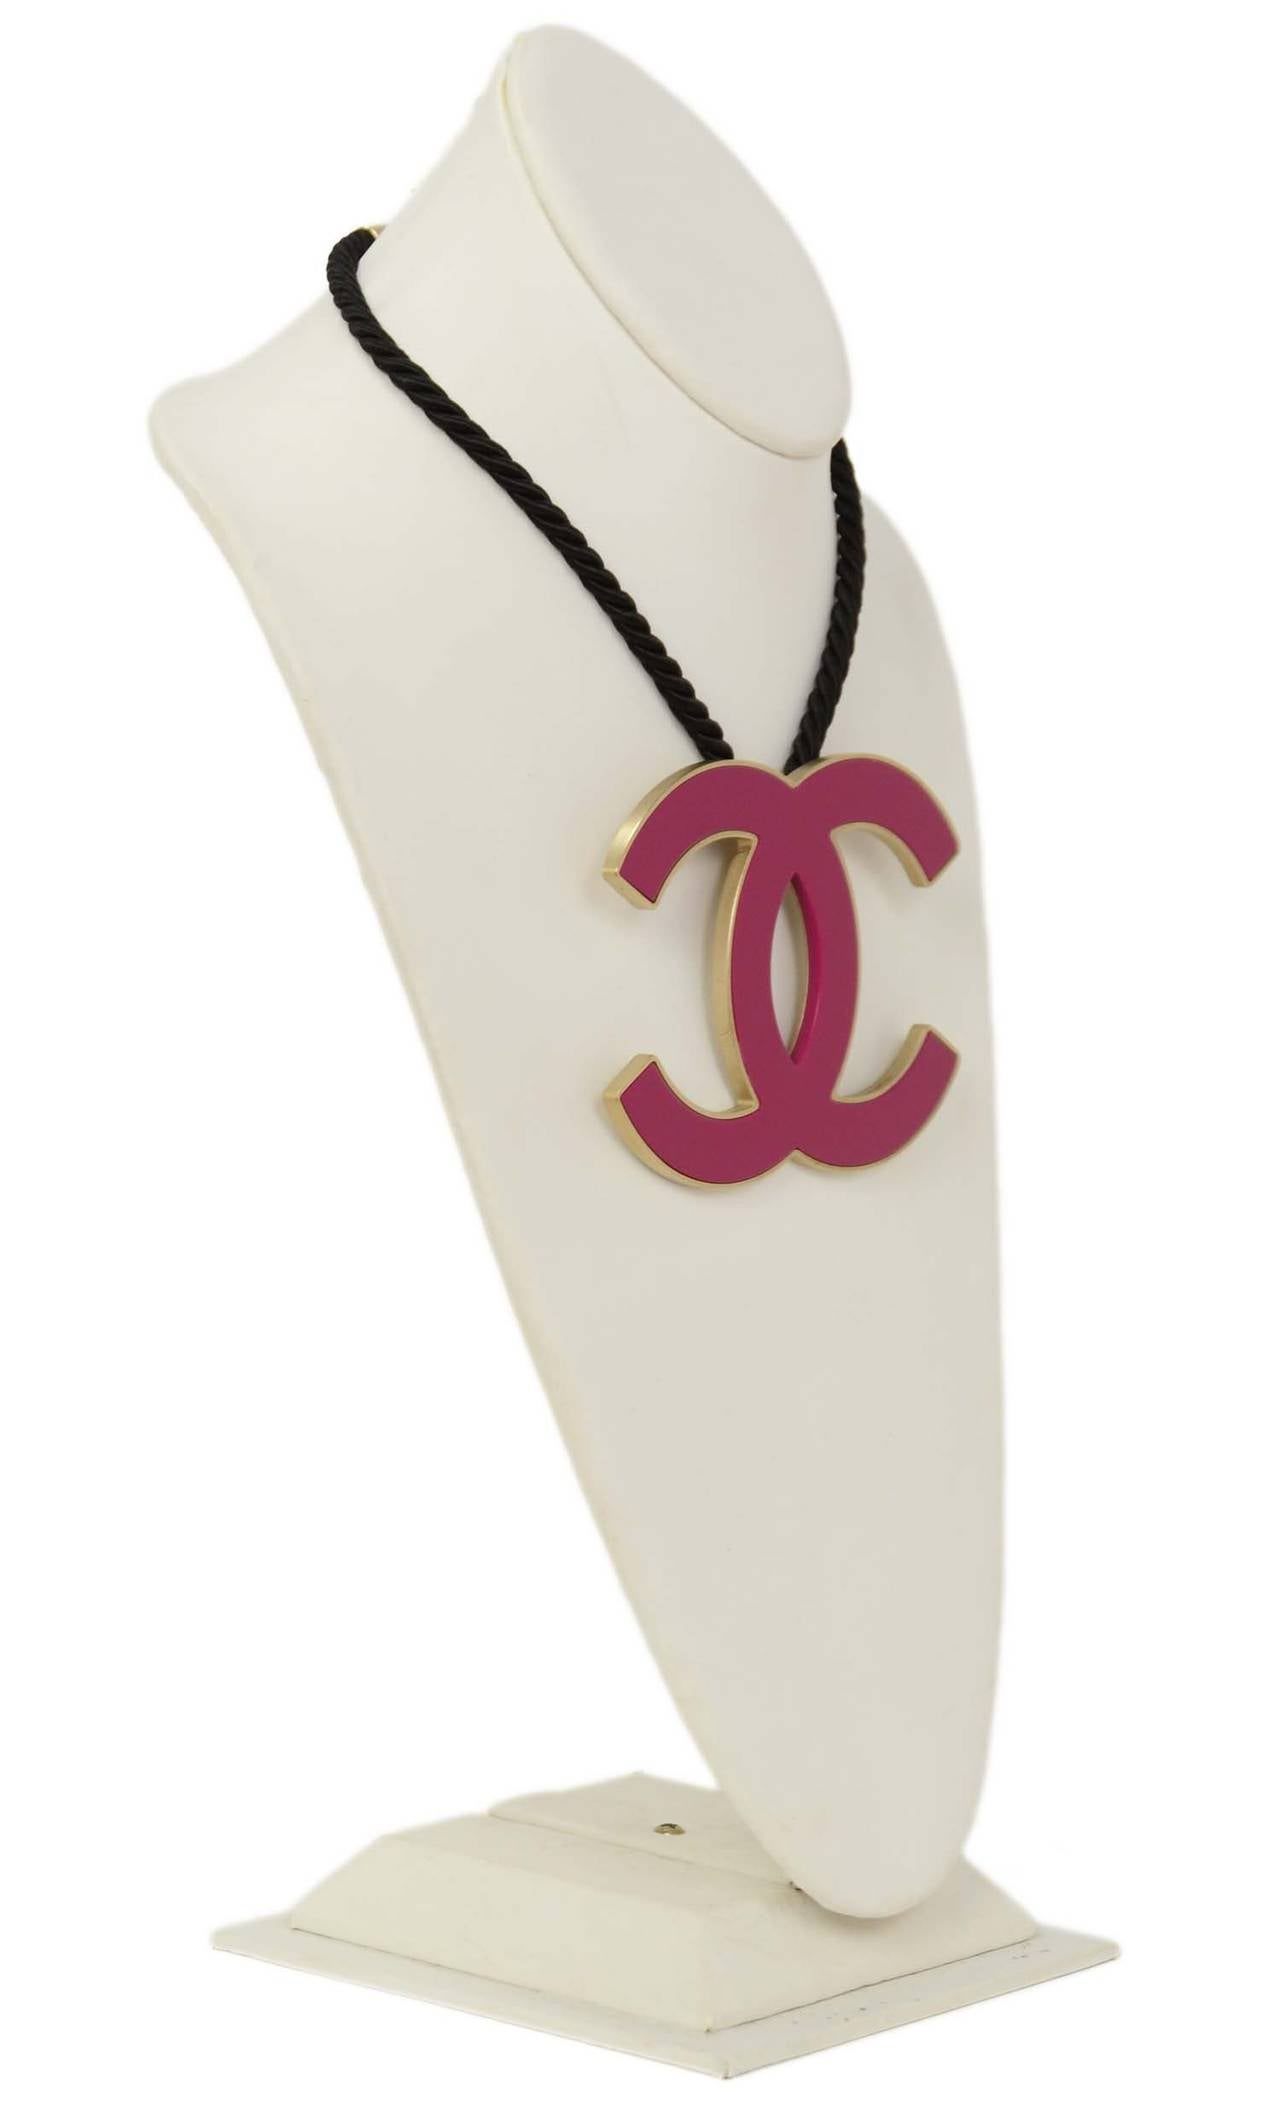 CHANEL 2008 Fuschia Pink Resin XL CC Necklace 2